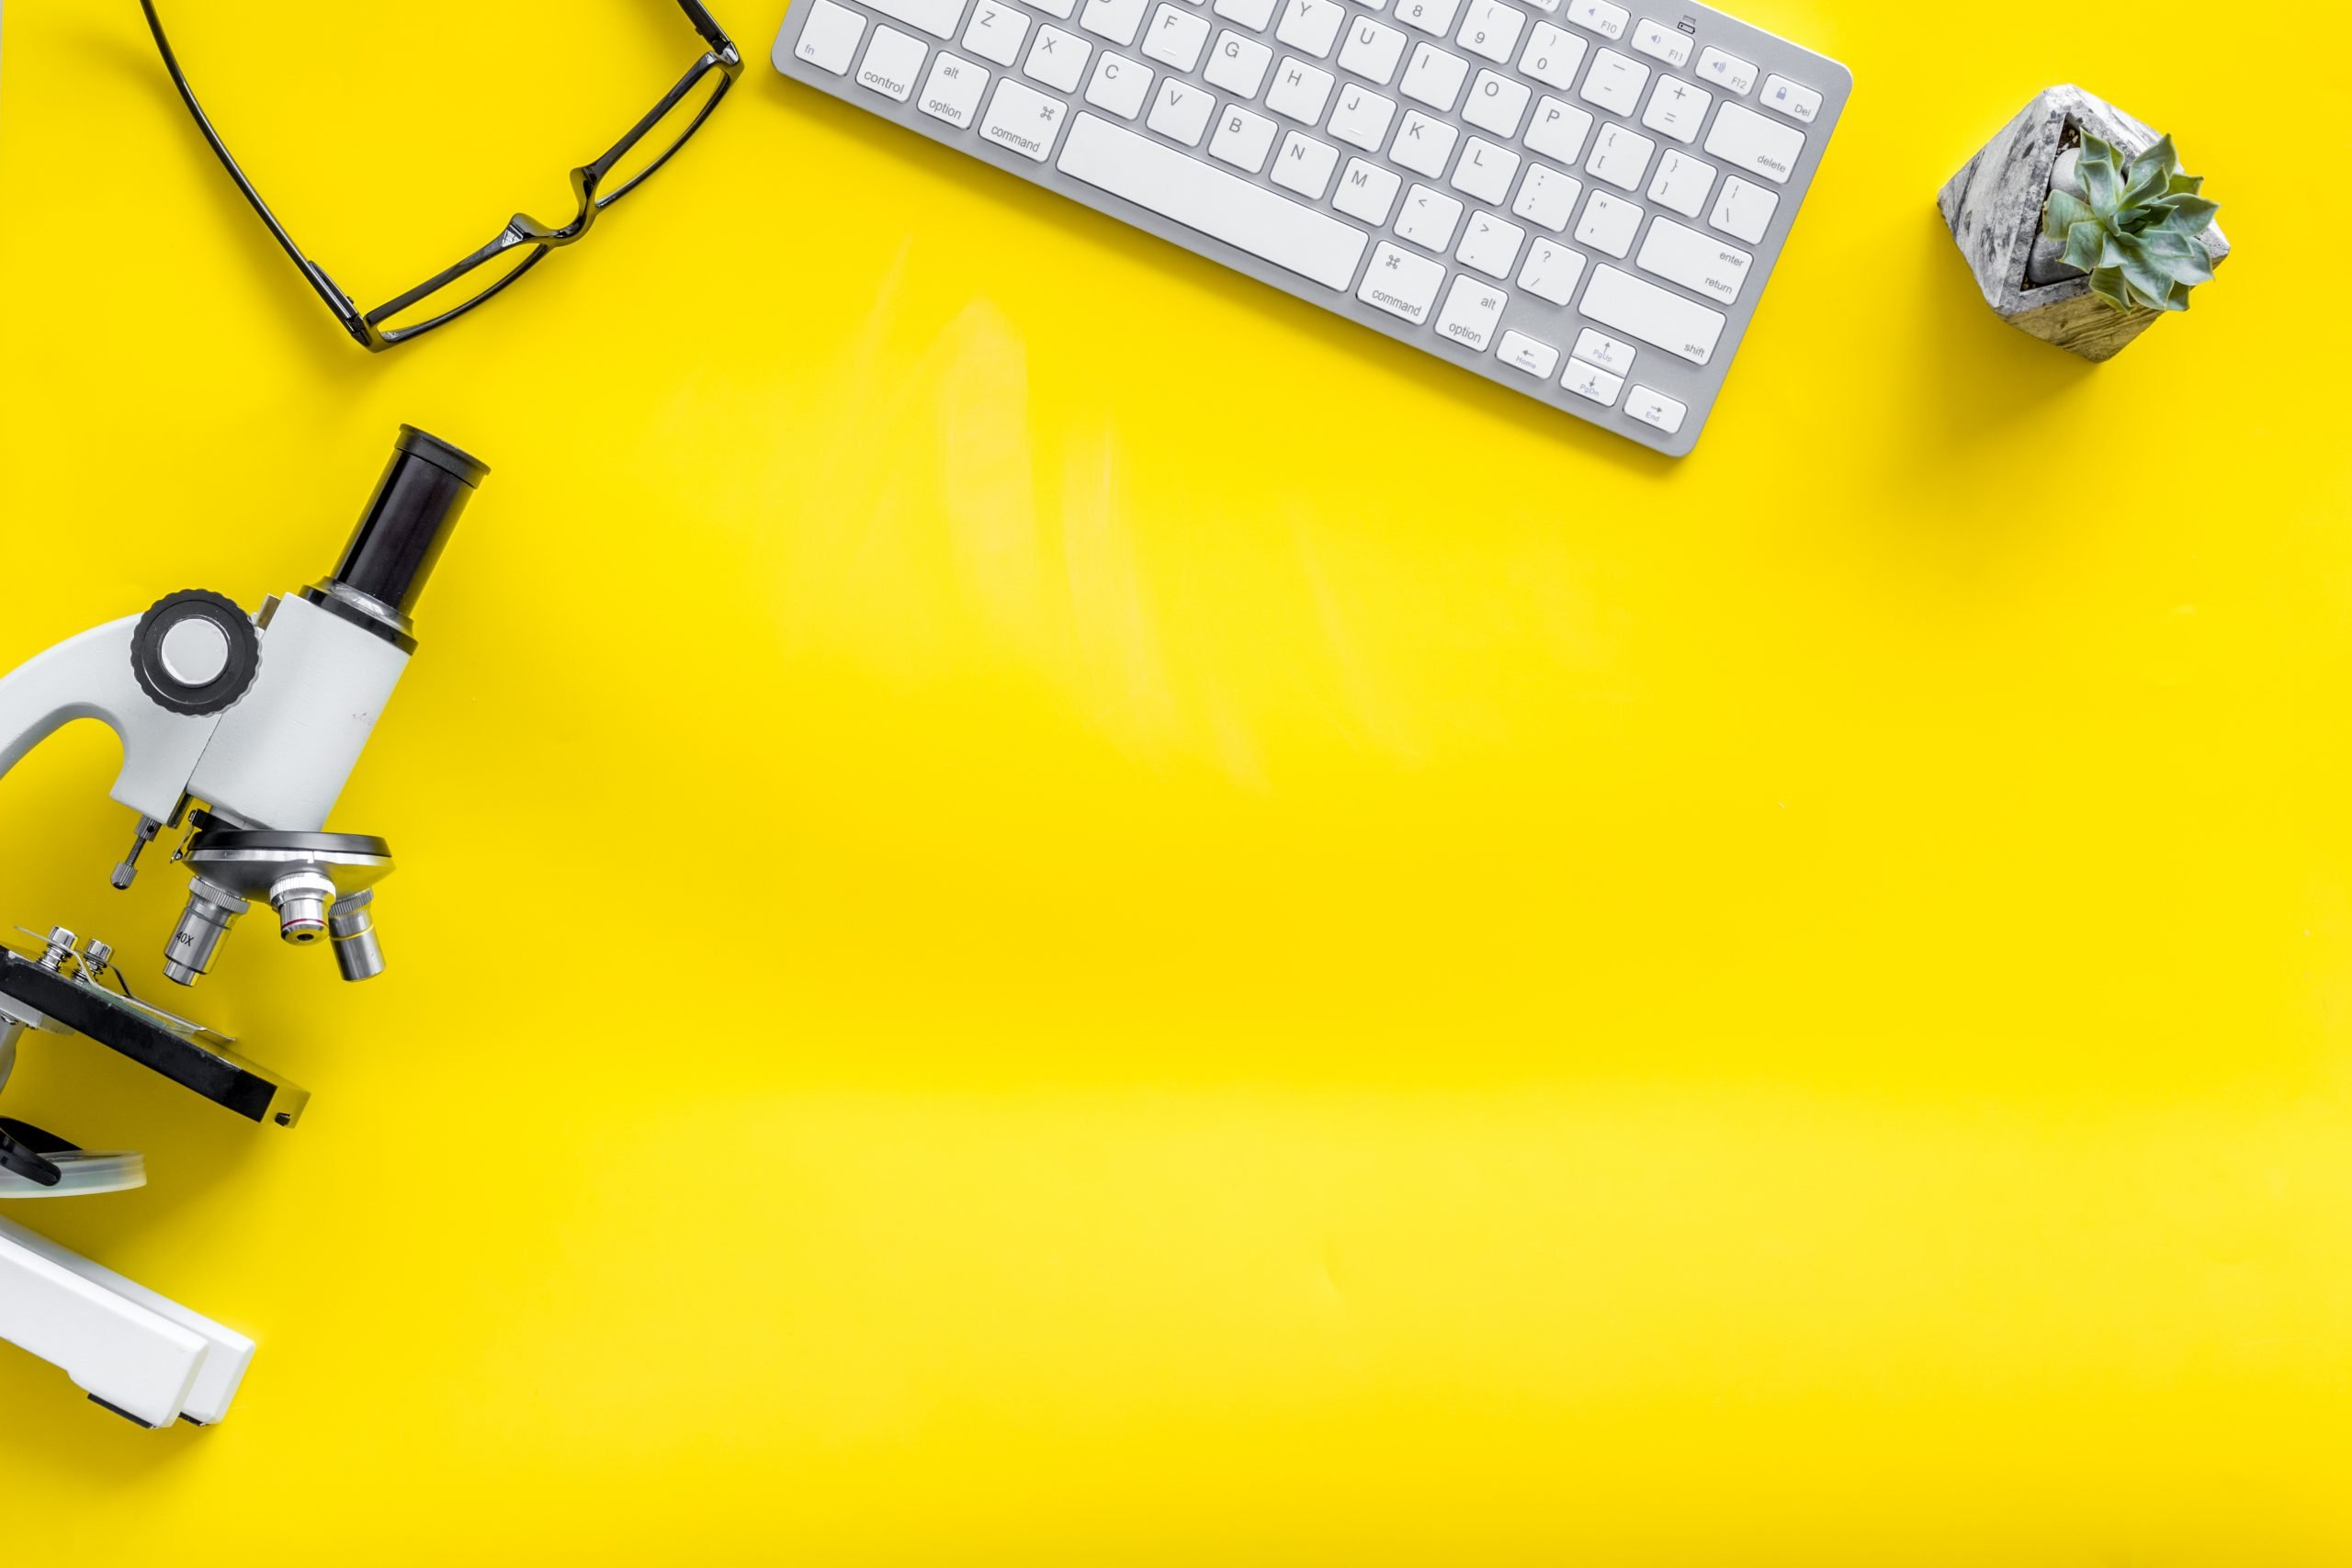 A keyboard, glasses, paper and microscope laid out on a yellow background